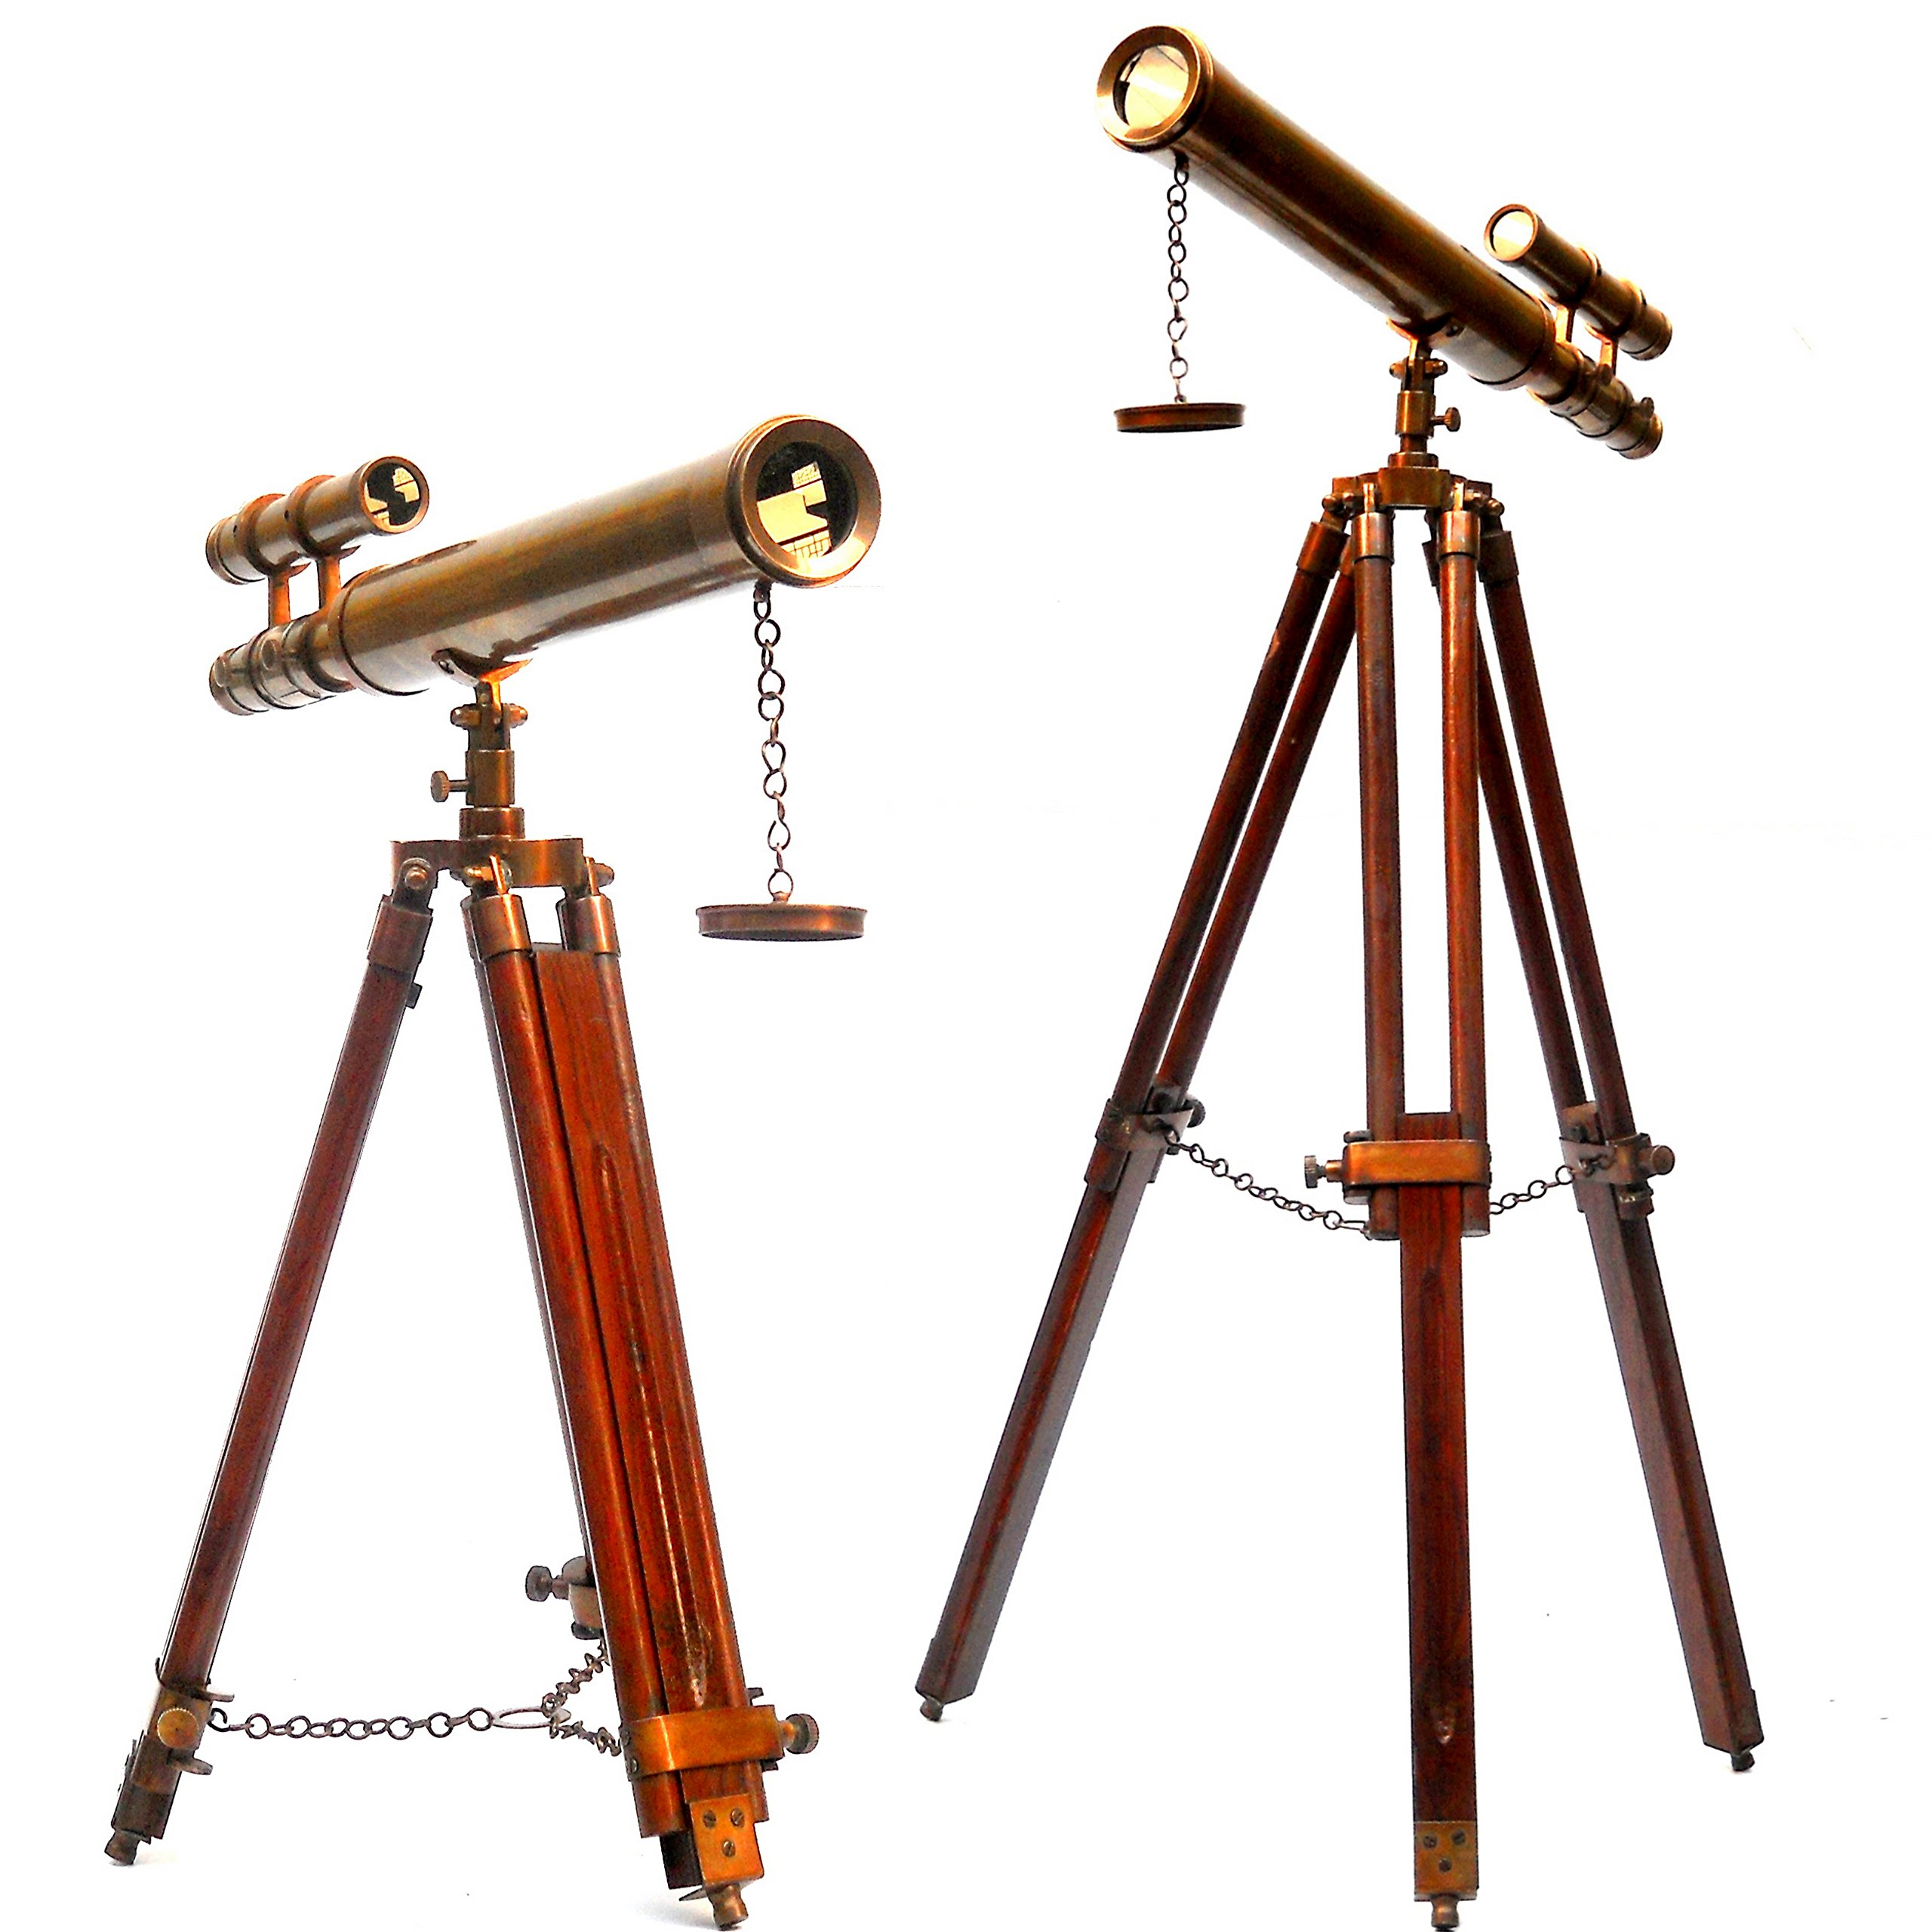 collectiblesBuy Nautical Vintage Marine Antique Telescope with Wooden Unique Tripod Handmade Double Barrel Handicraft Low Floor Standing Desk Decor by collectiblesBuy